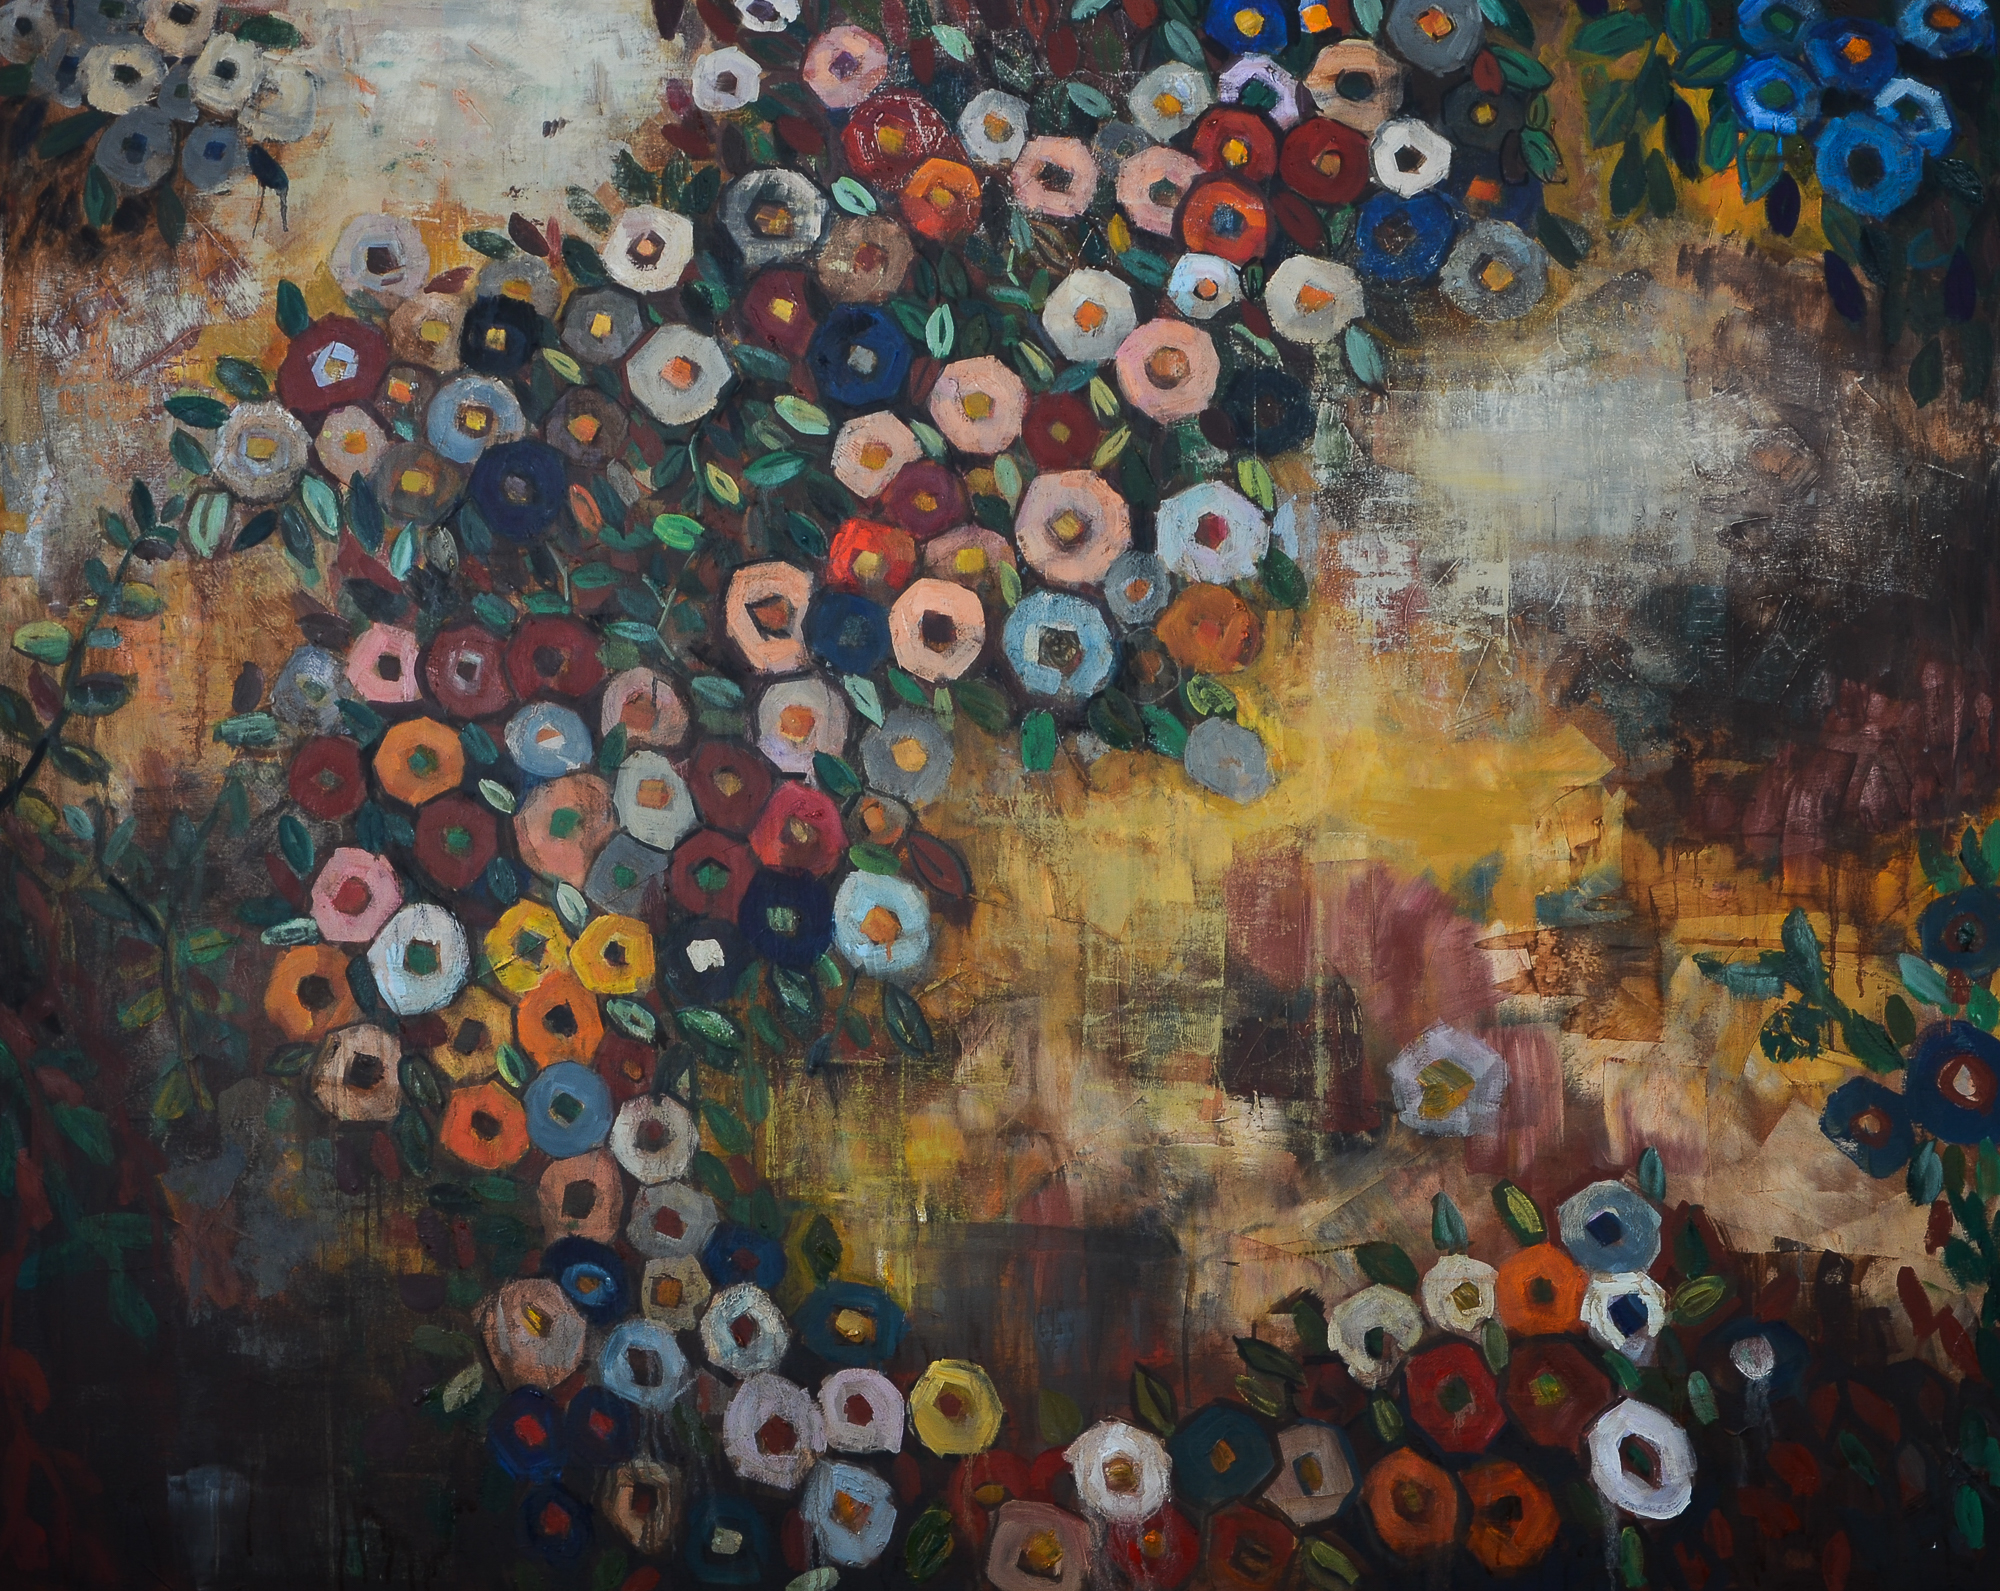 Fabric of Garden (48x60) oil on canvas 2